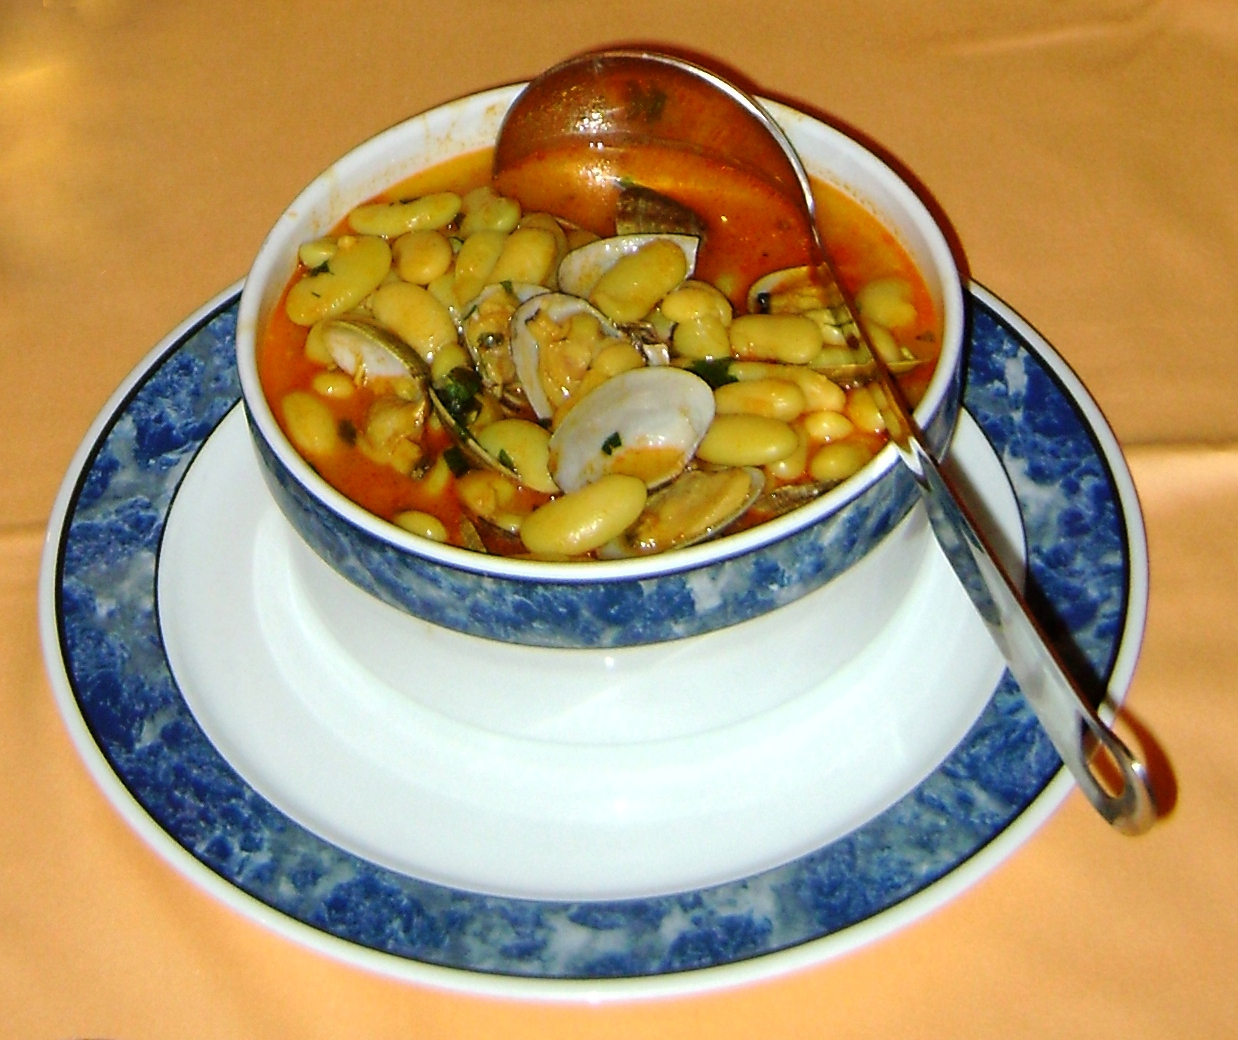 Beans with clams